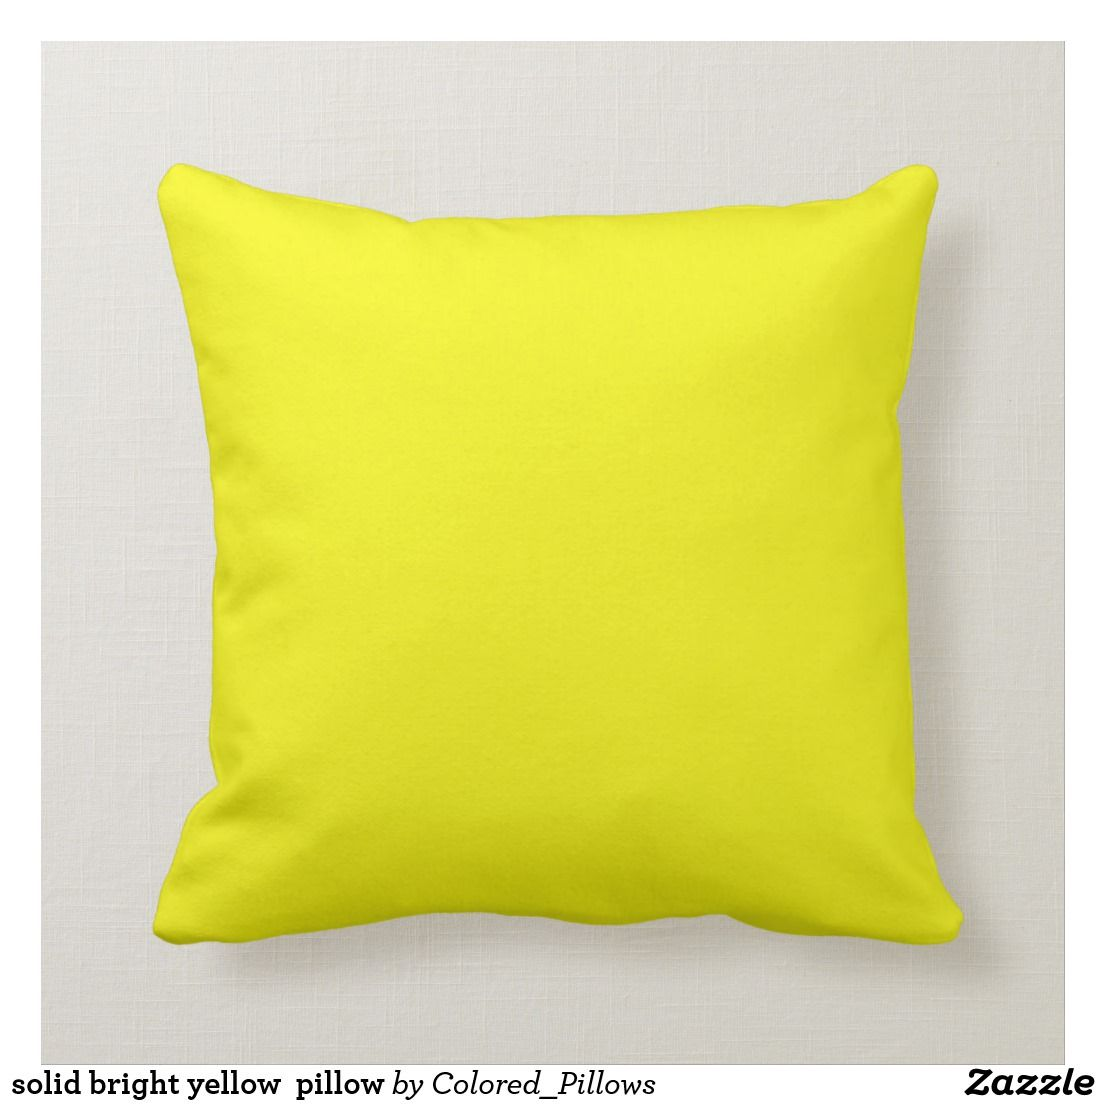 Solid Bright Yellow Pillow Bright Yellow Pillows Yellow Pillows